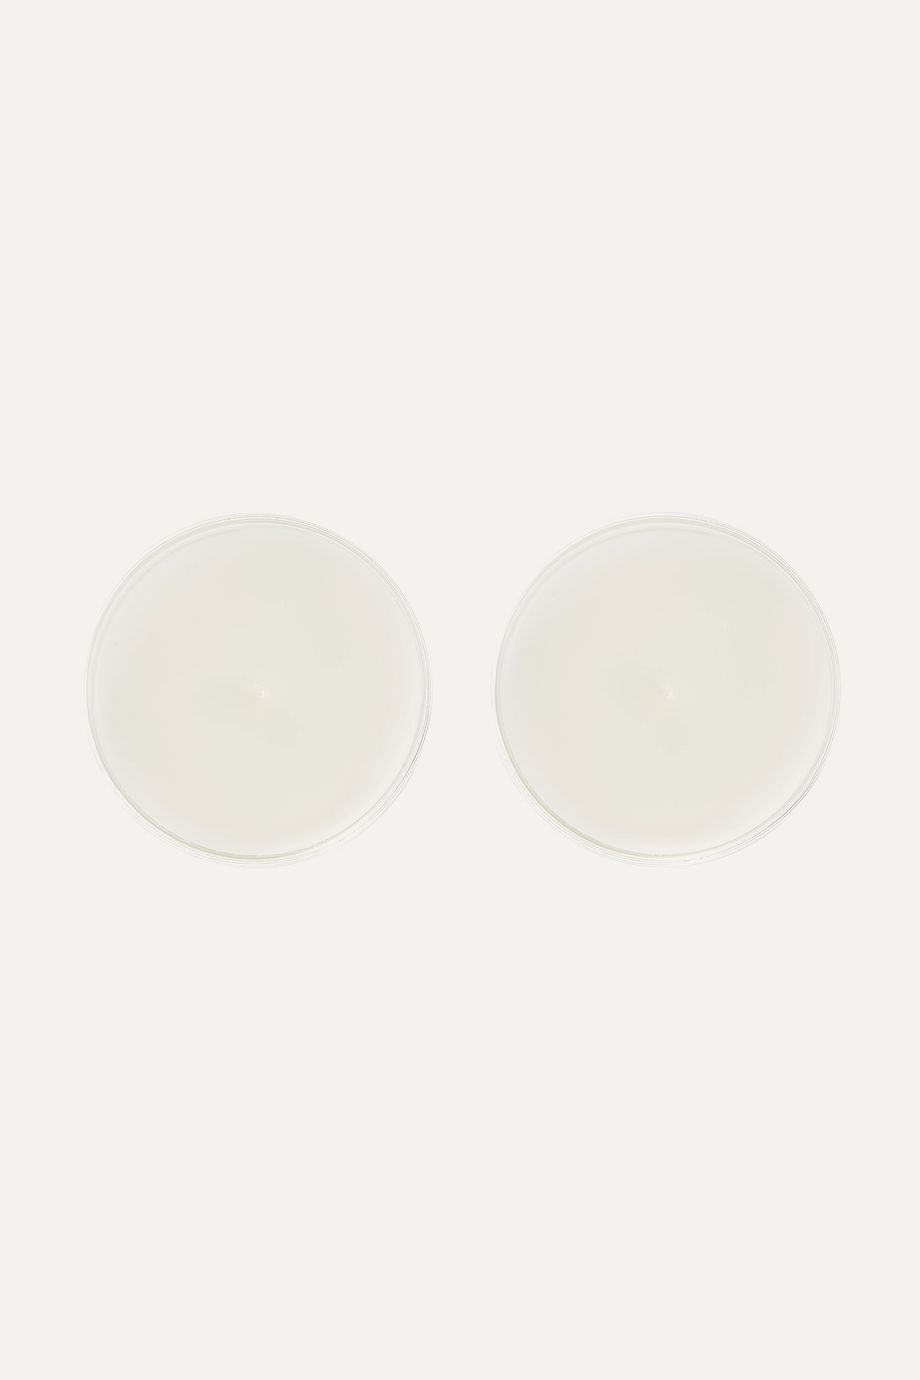 Diptyque Figuier and Cyprès set of two scented candles, 2 x 190g